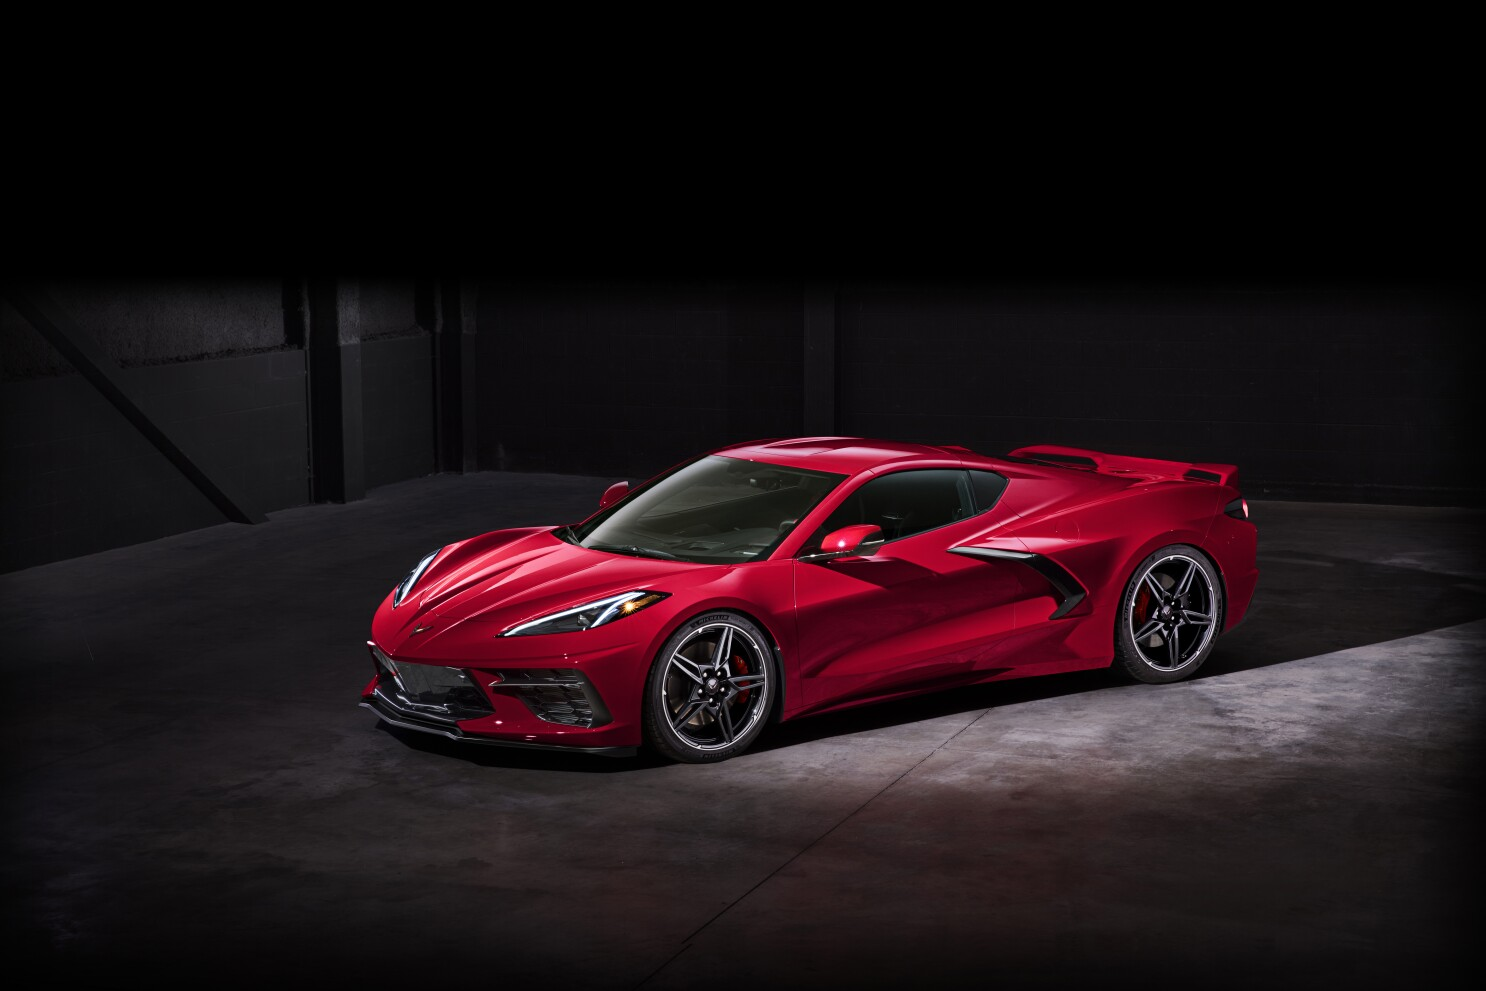 GM defies a shrinking sports car market with its new, sub-$60,000 Corvette